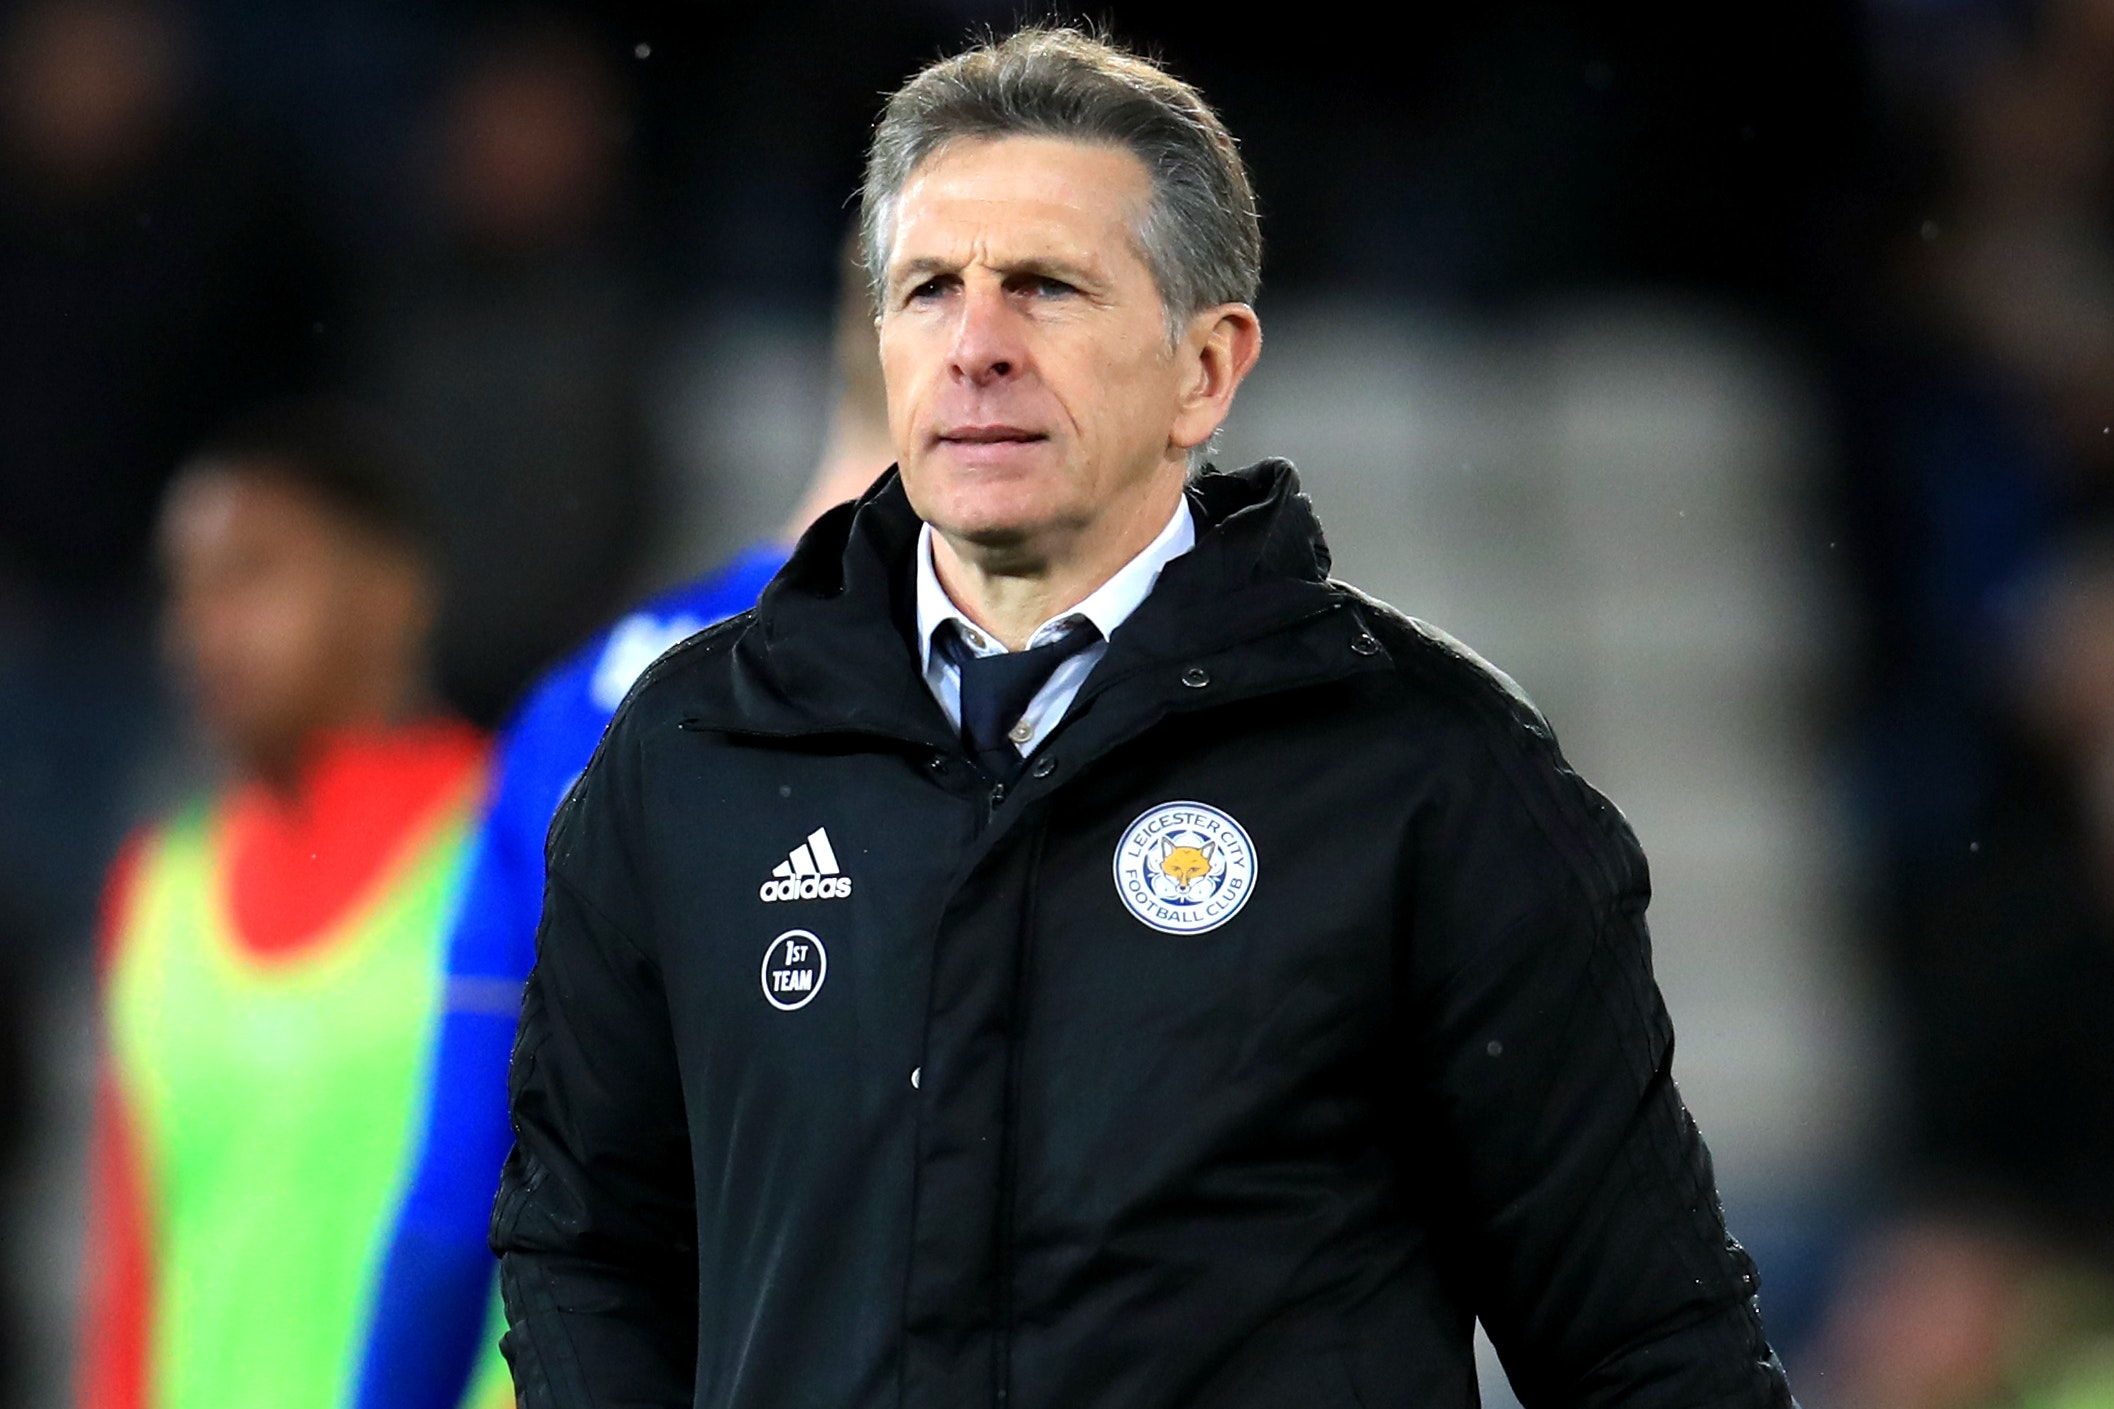 Leicester manager Claude Puel has been under fire from fans